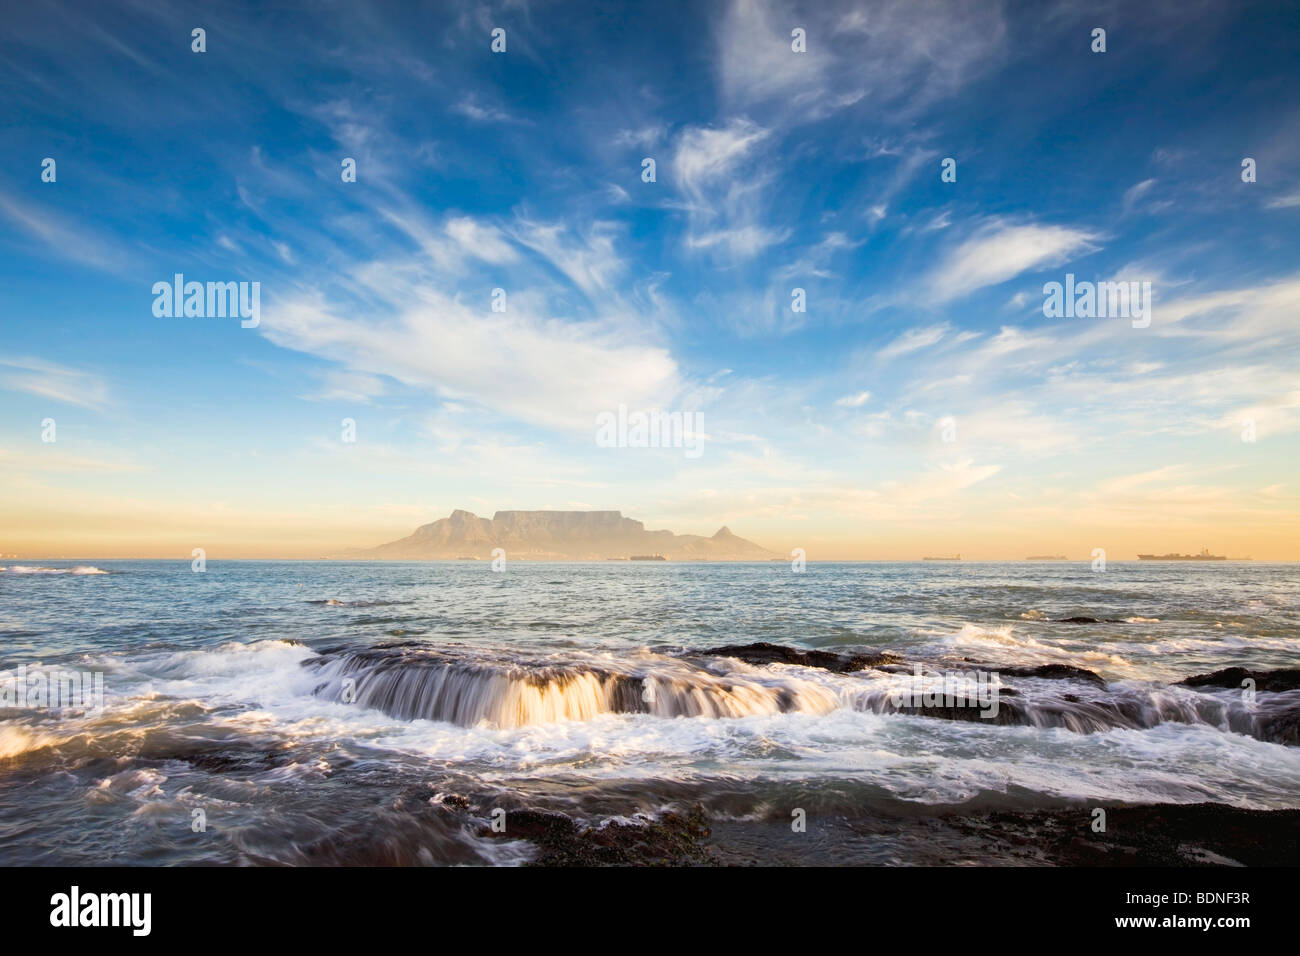 Surf on rocks with Table Mountain in background, Bloubergstrand, Western Cape Province, South Africa - Stock Image